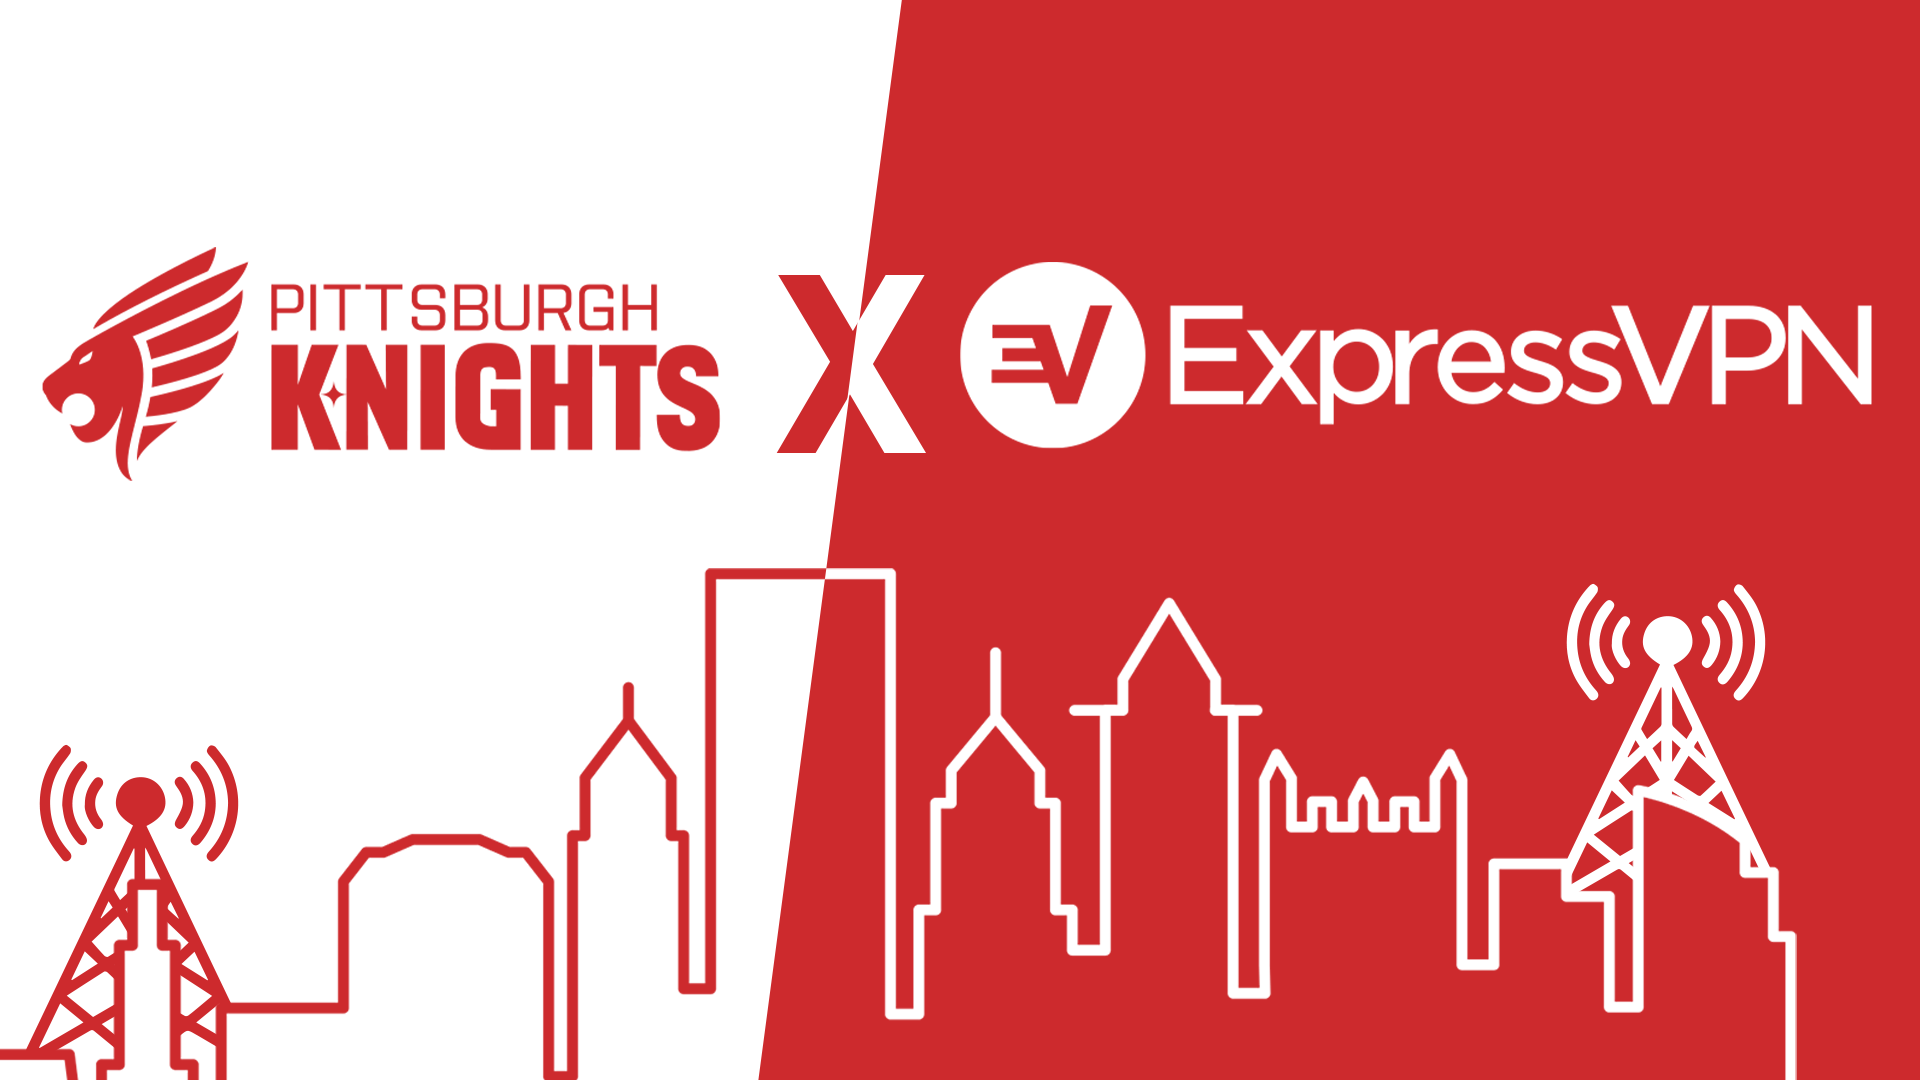 KnightsXVPN - Pittsburgh Knights secures deal with ExpressVPN